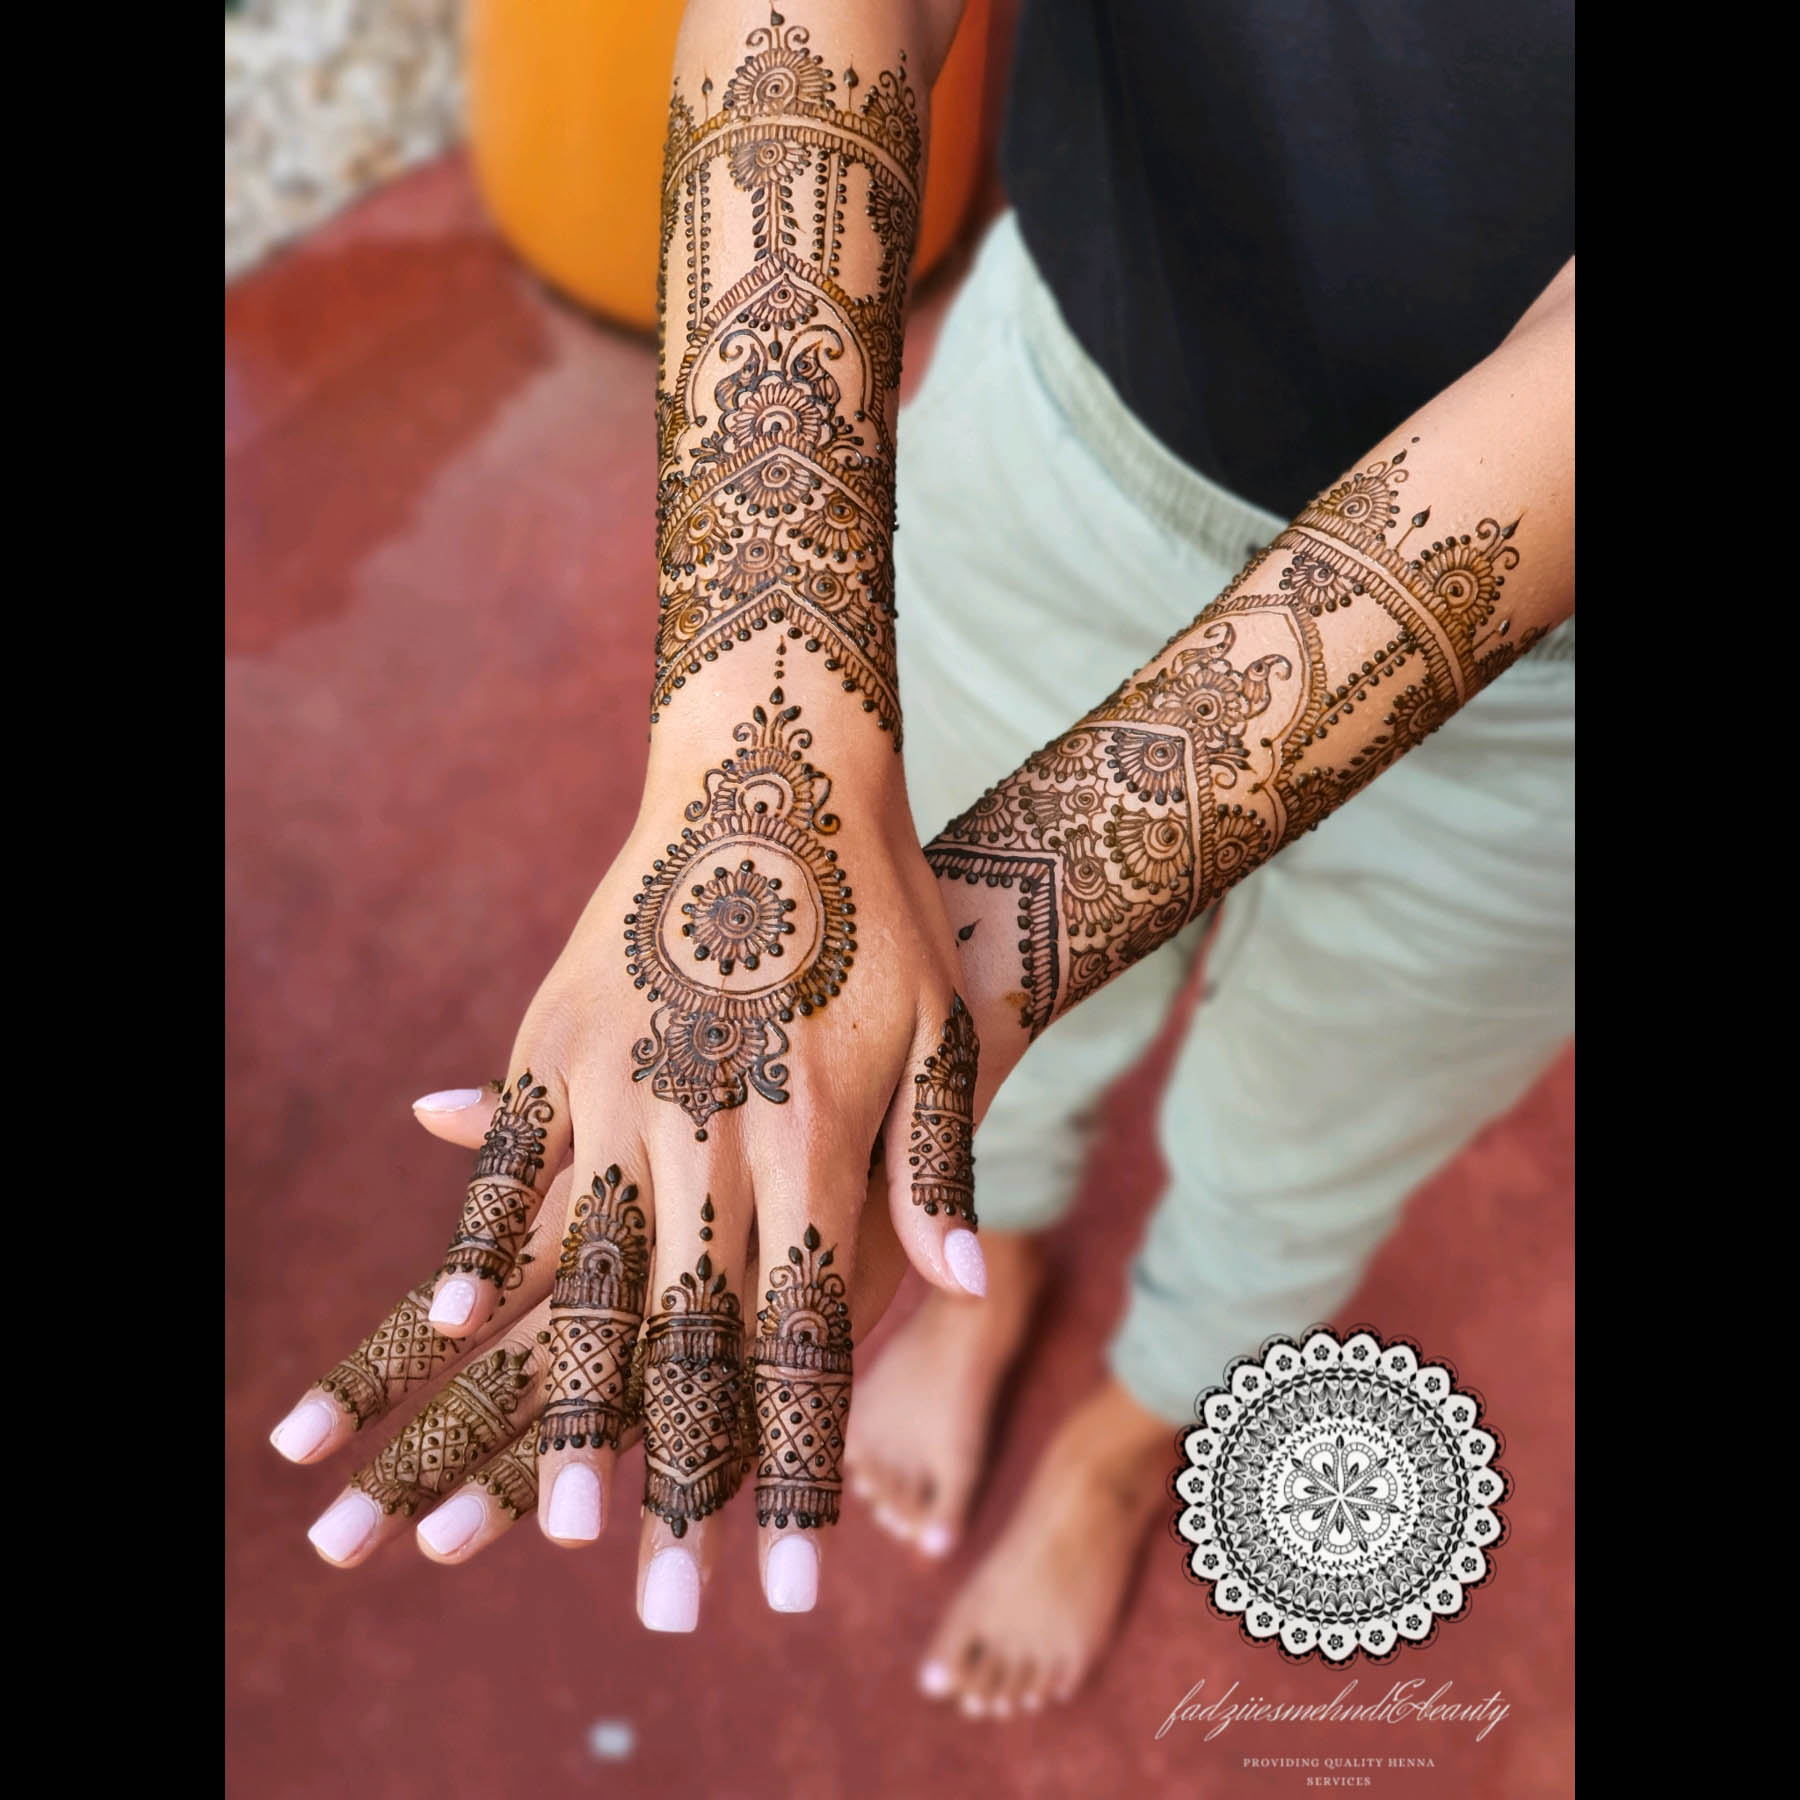 Professional Melbourne bridal henna and makeup artist, Fadziies Mehndi And Beauty was the official mehndi artist of Vini Raman on her engagement. Photography was captured by wedding photographer, Shevan J Photography.